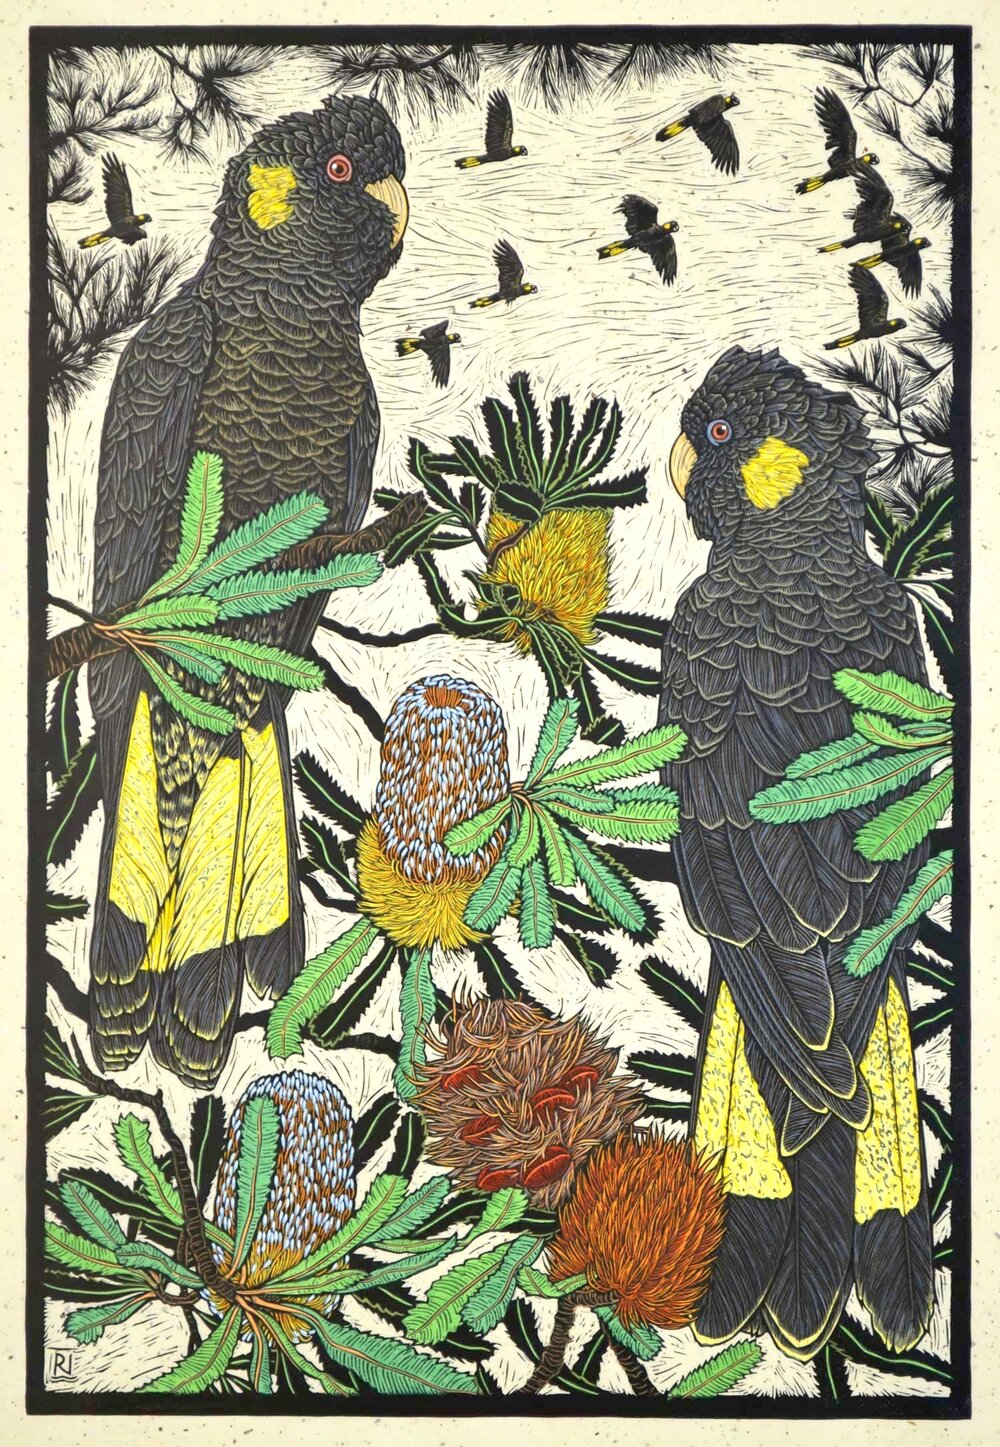 yellow-tailed-black-cockatoo-and-banksia-linocut-rachel-newling.jpg